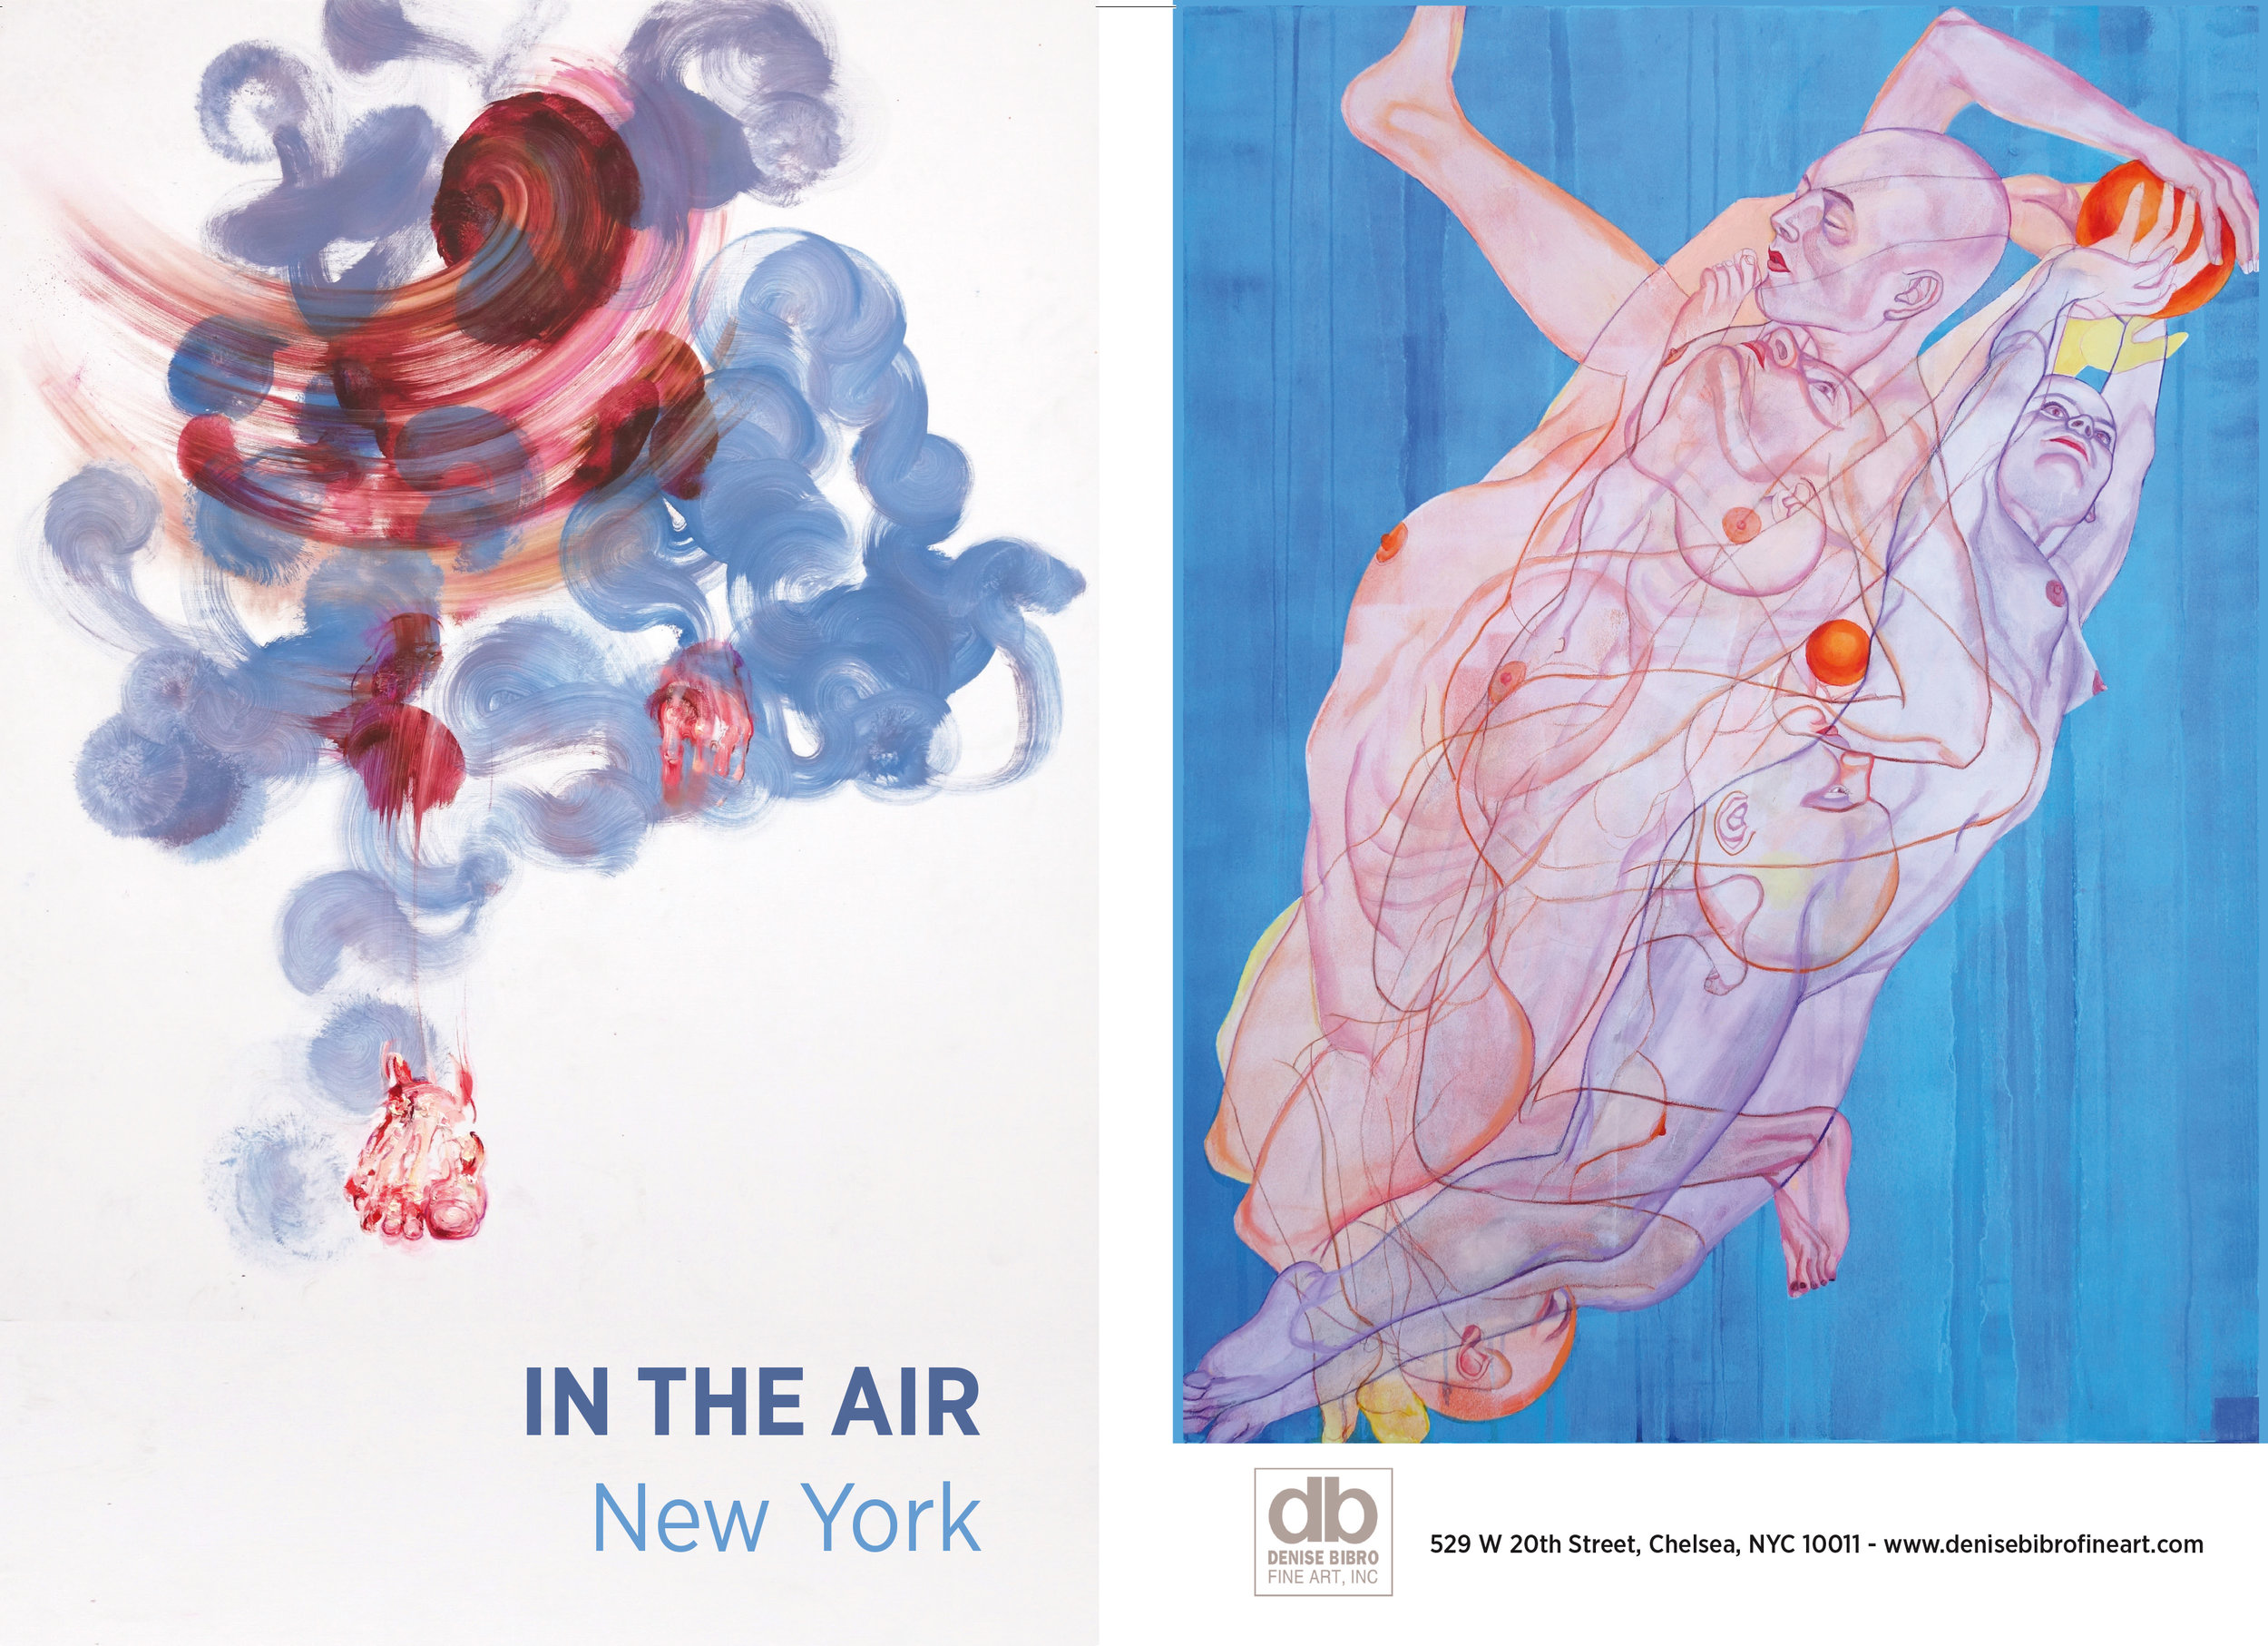 IN THE AIR: New York